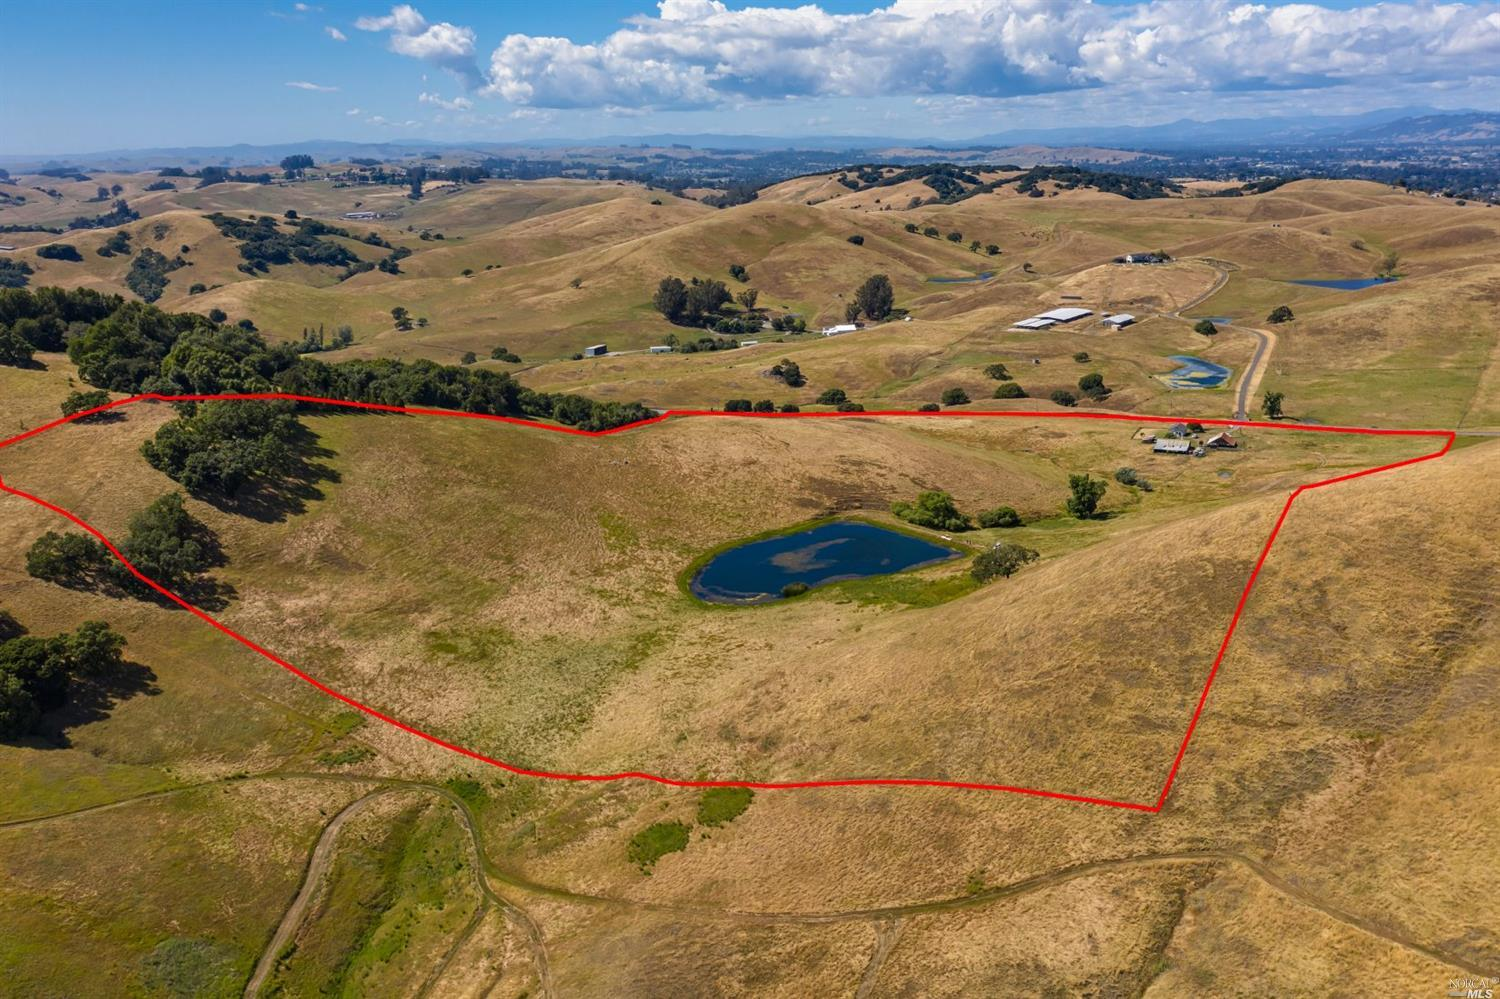 56 beautiful acres less than 4 miles to downtown Petaluma.  A variety of terrain presents endless possibilities, with level acres close to D Street, ascending to beautiful hills along the southern portion encompassing a man-made pond with excellent bass fishing.  Ample opportunities for agricultural endeavor, farming, and ranching, with 2 barns on property.  Also present is a well-maintained older home.